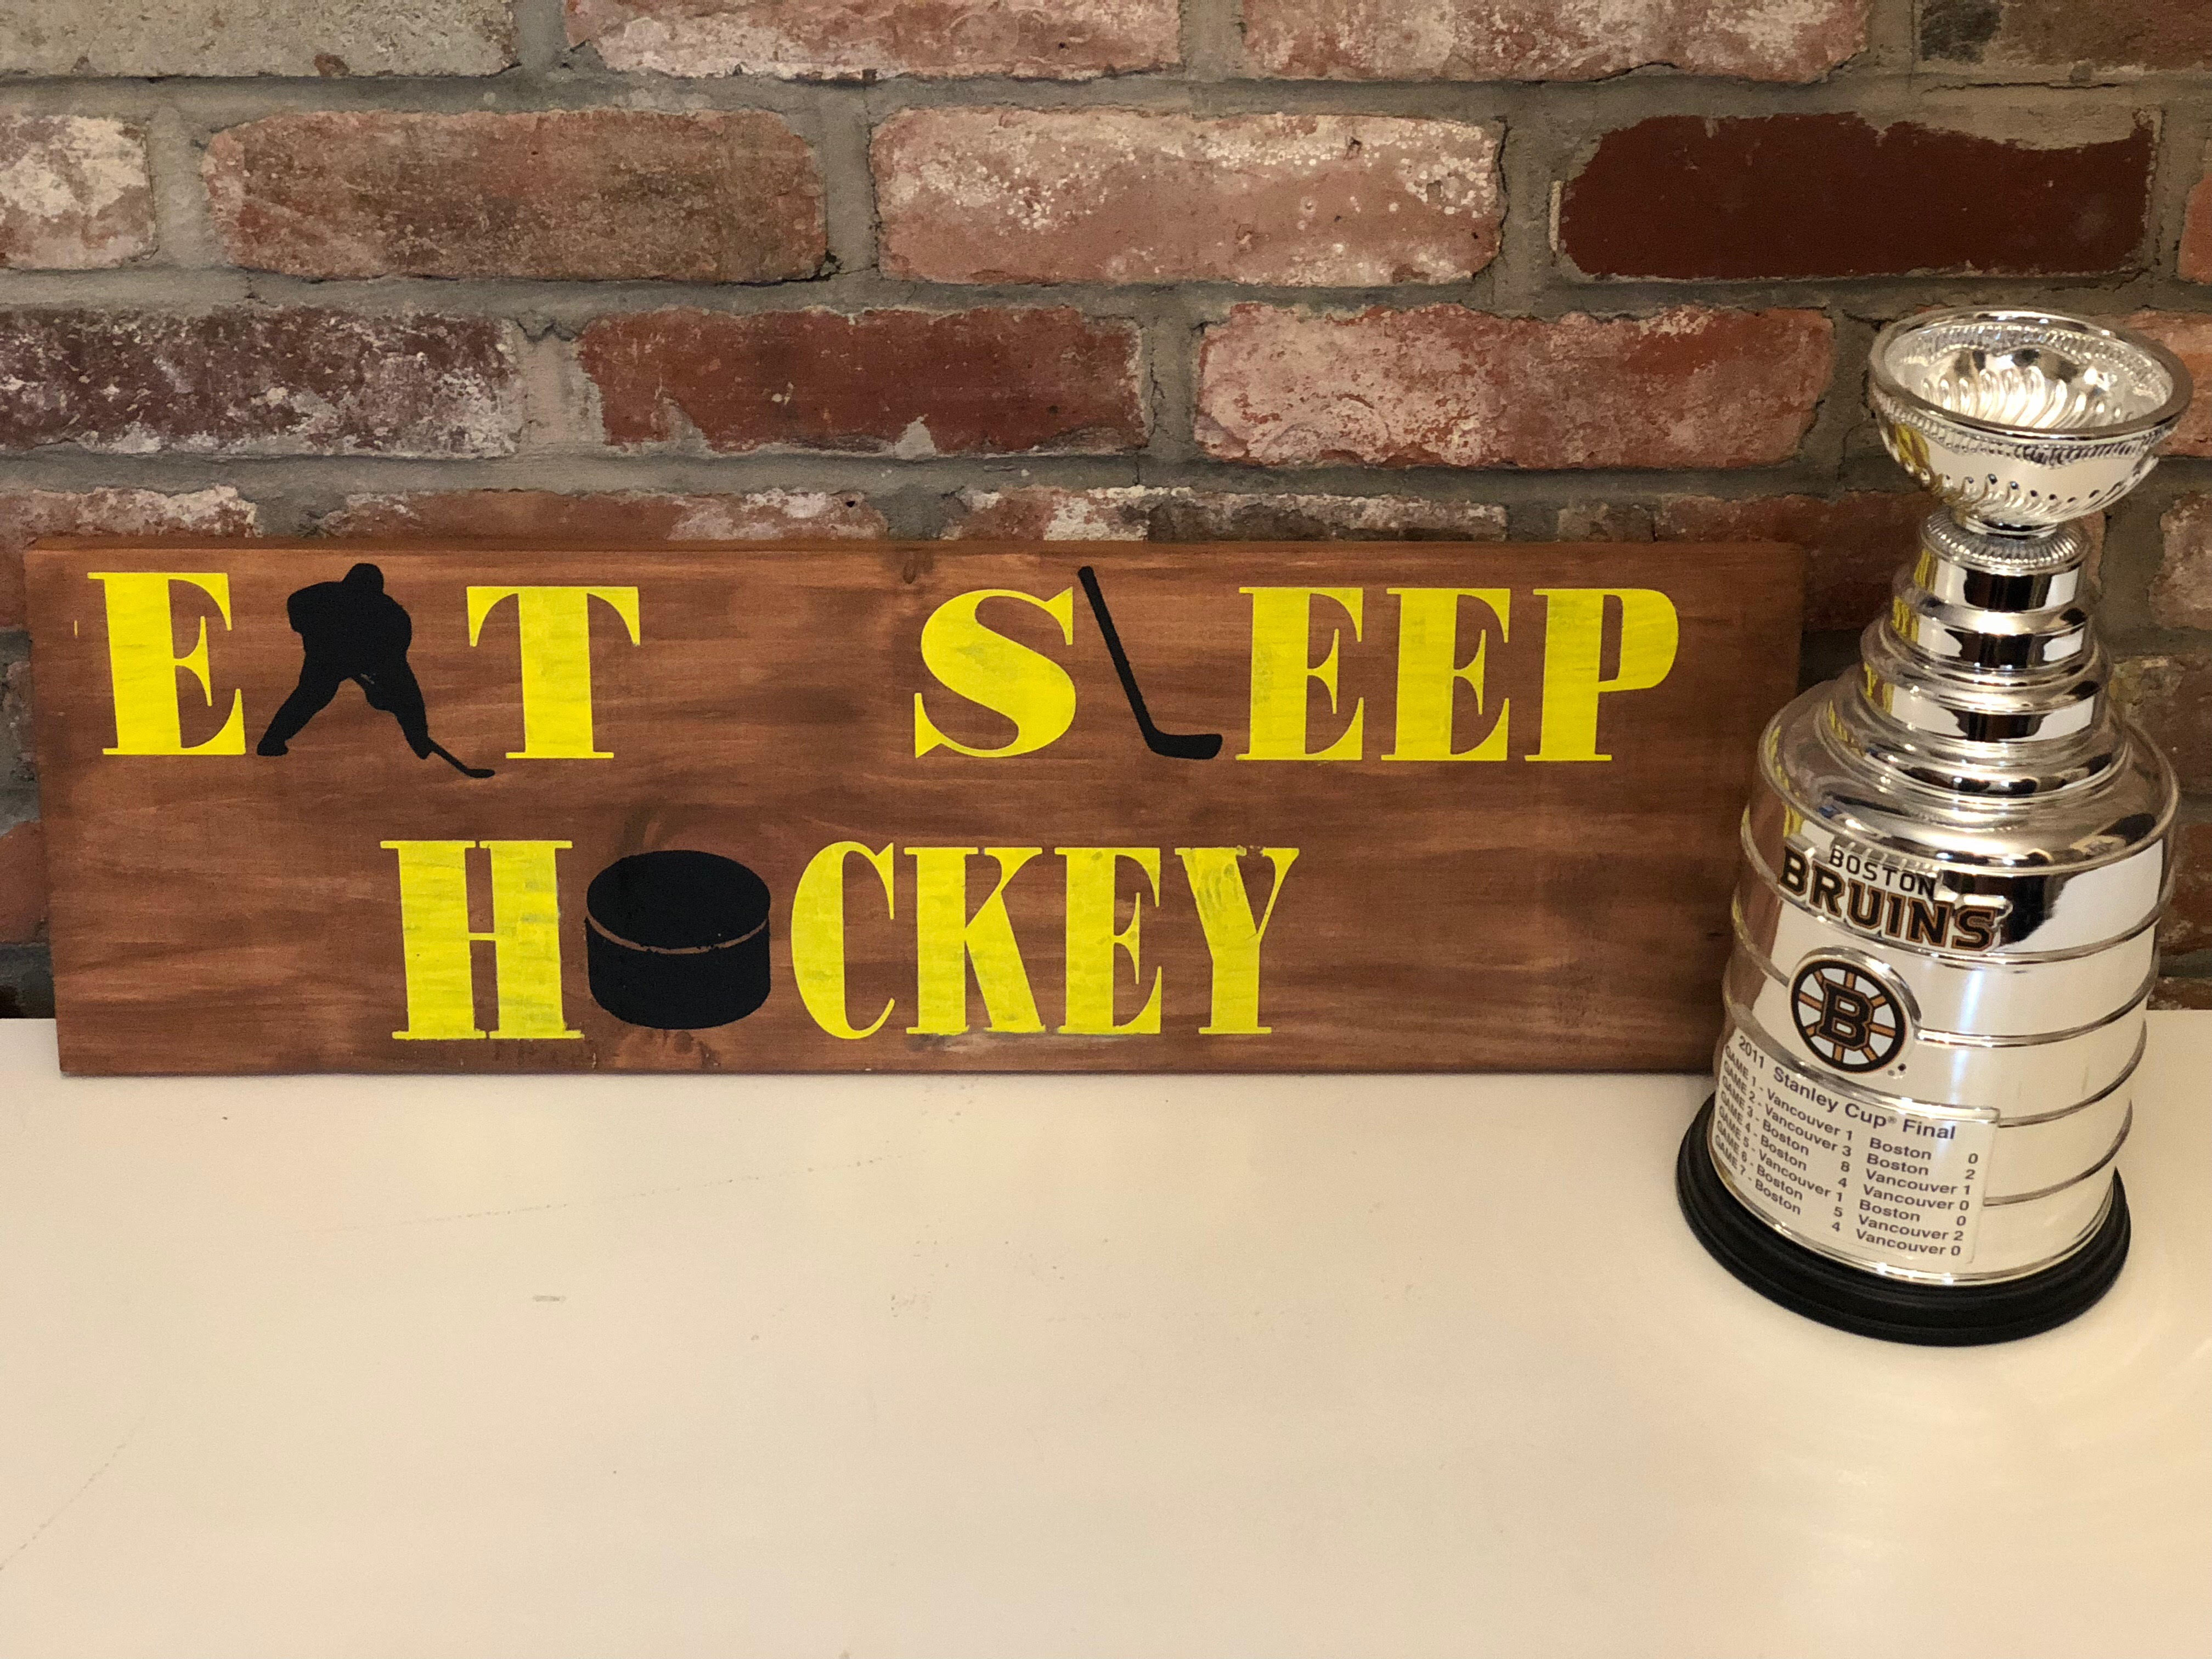 #206 Eat Sleep Hockey